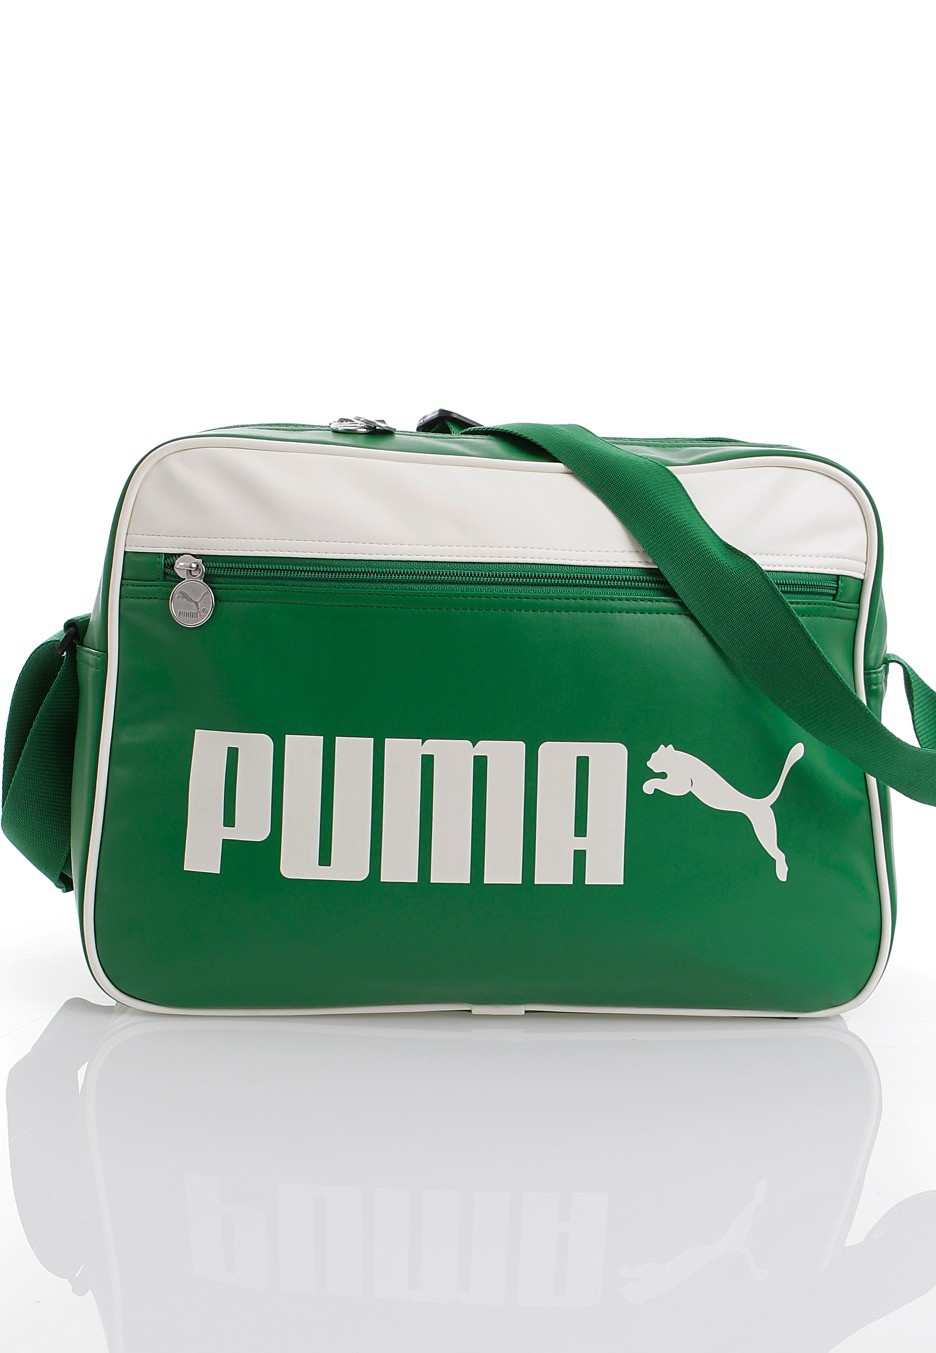 Puma - Campus Reporter Amazon Whisper White - Bag - Streetwear Shop -  Impericon.com Worldwide 0d28e39146c6b